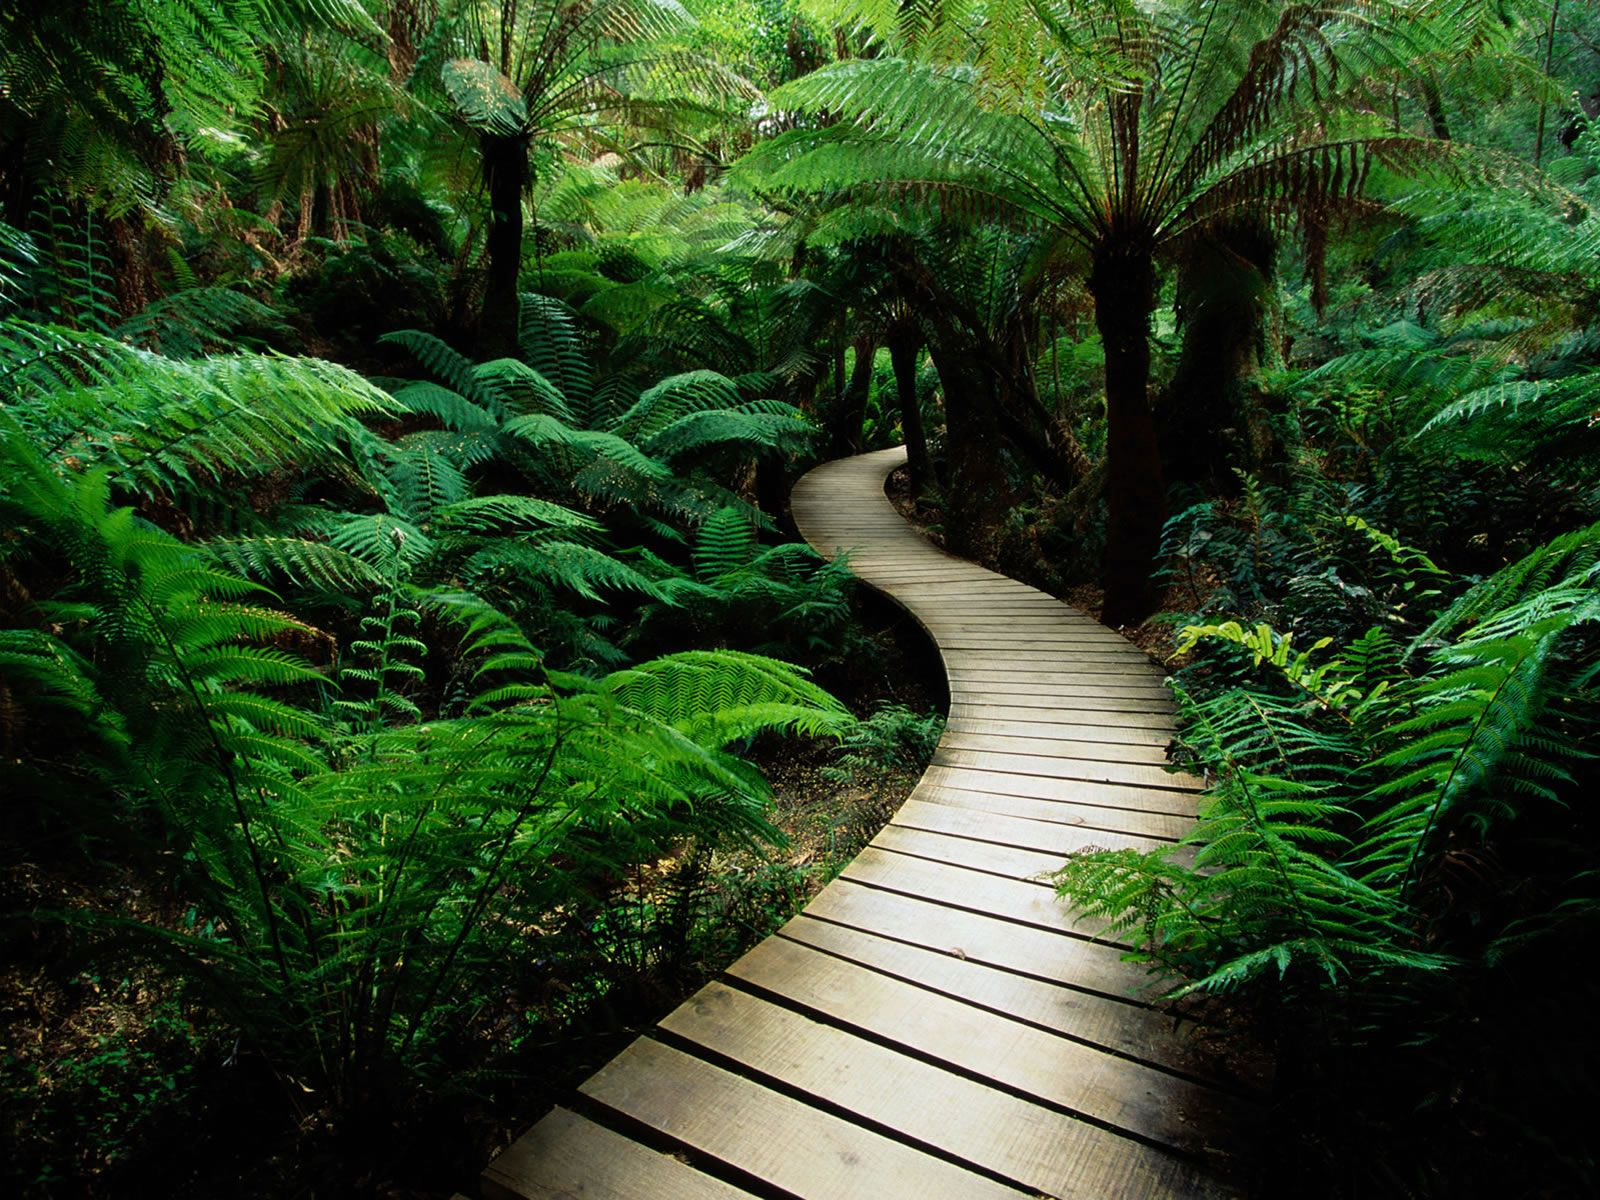 http://www.pixelstalk.net/free-download-jungle-wallpapers-hd/